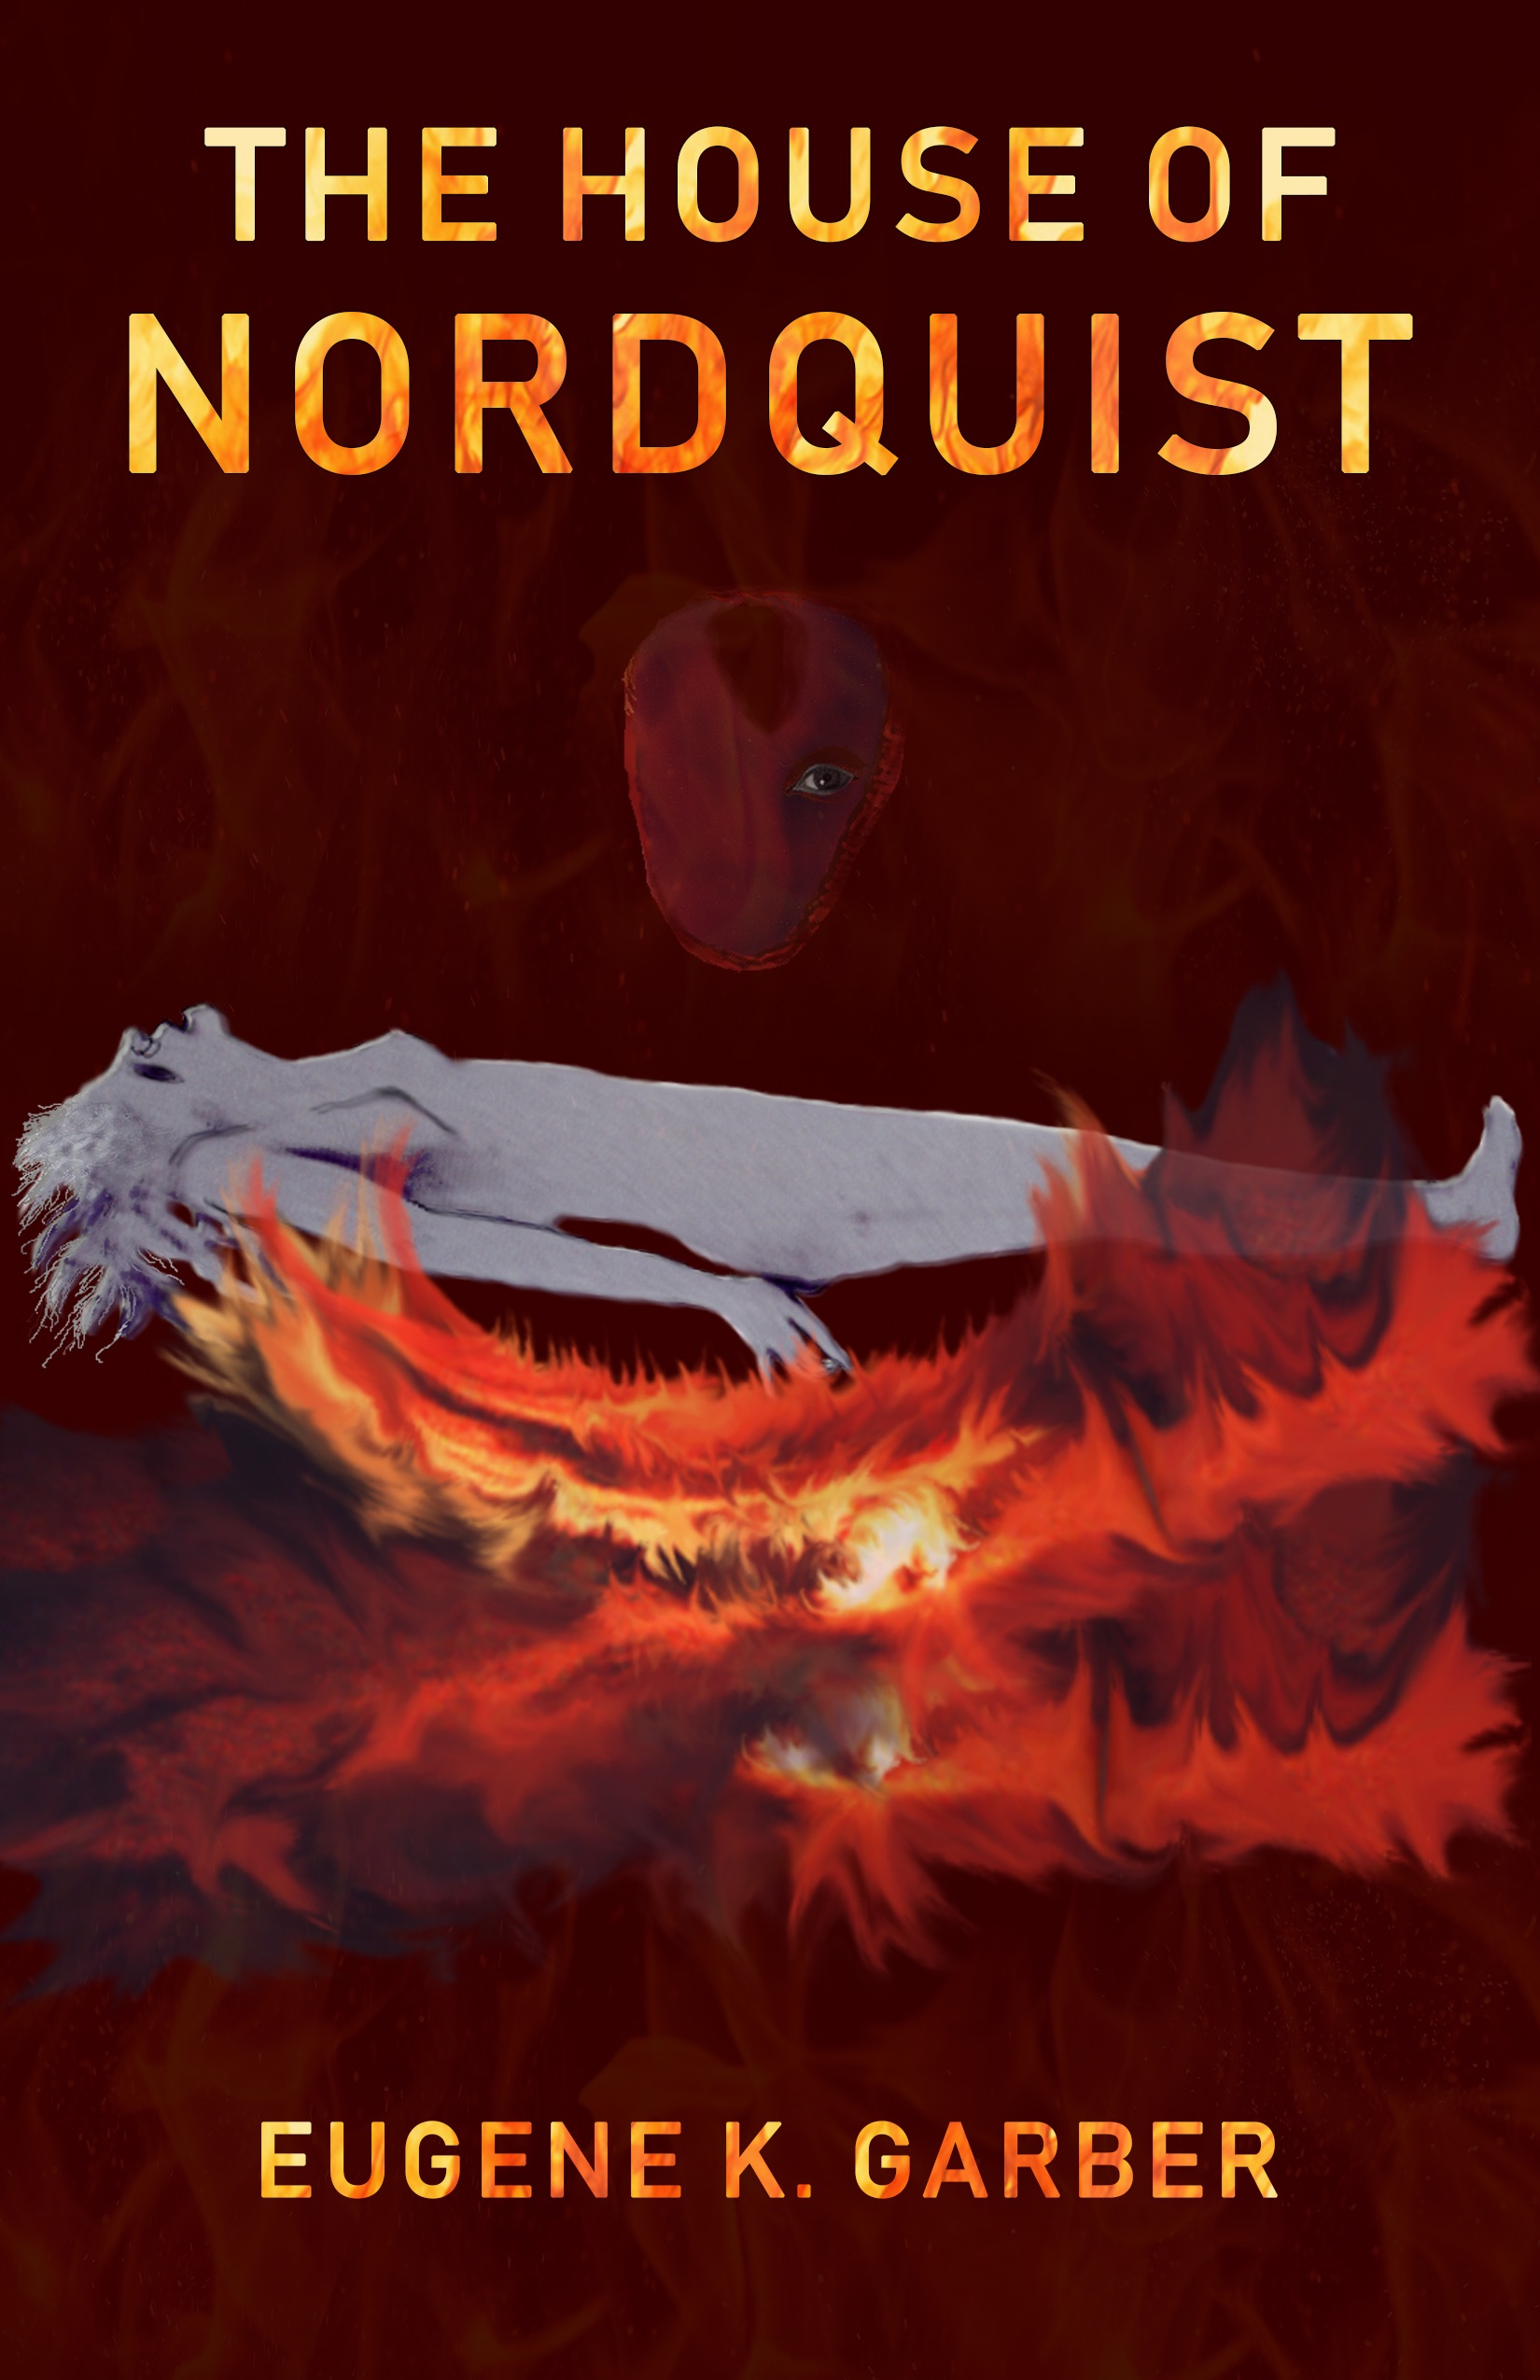 The House of Nordquist book cover